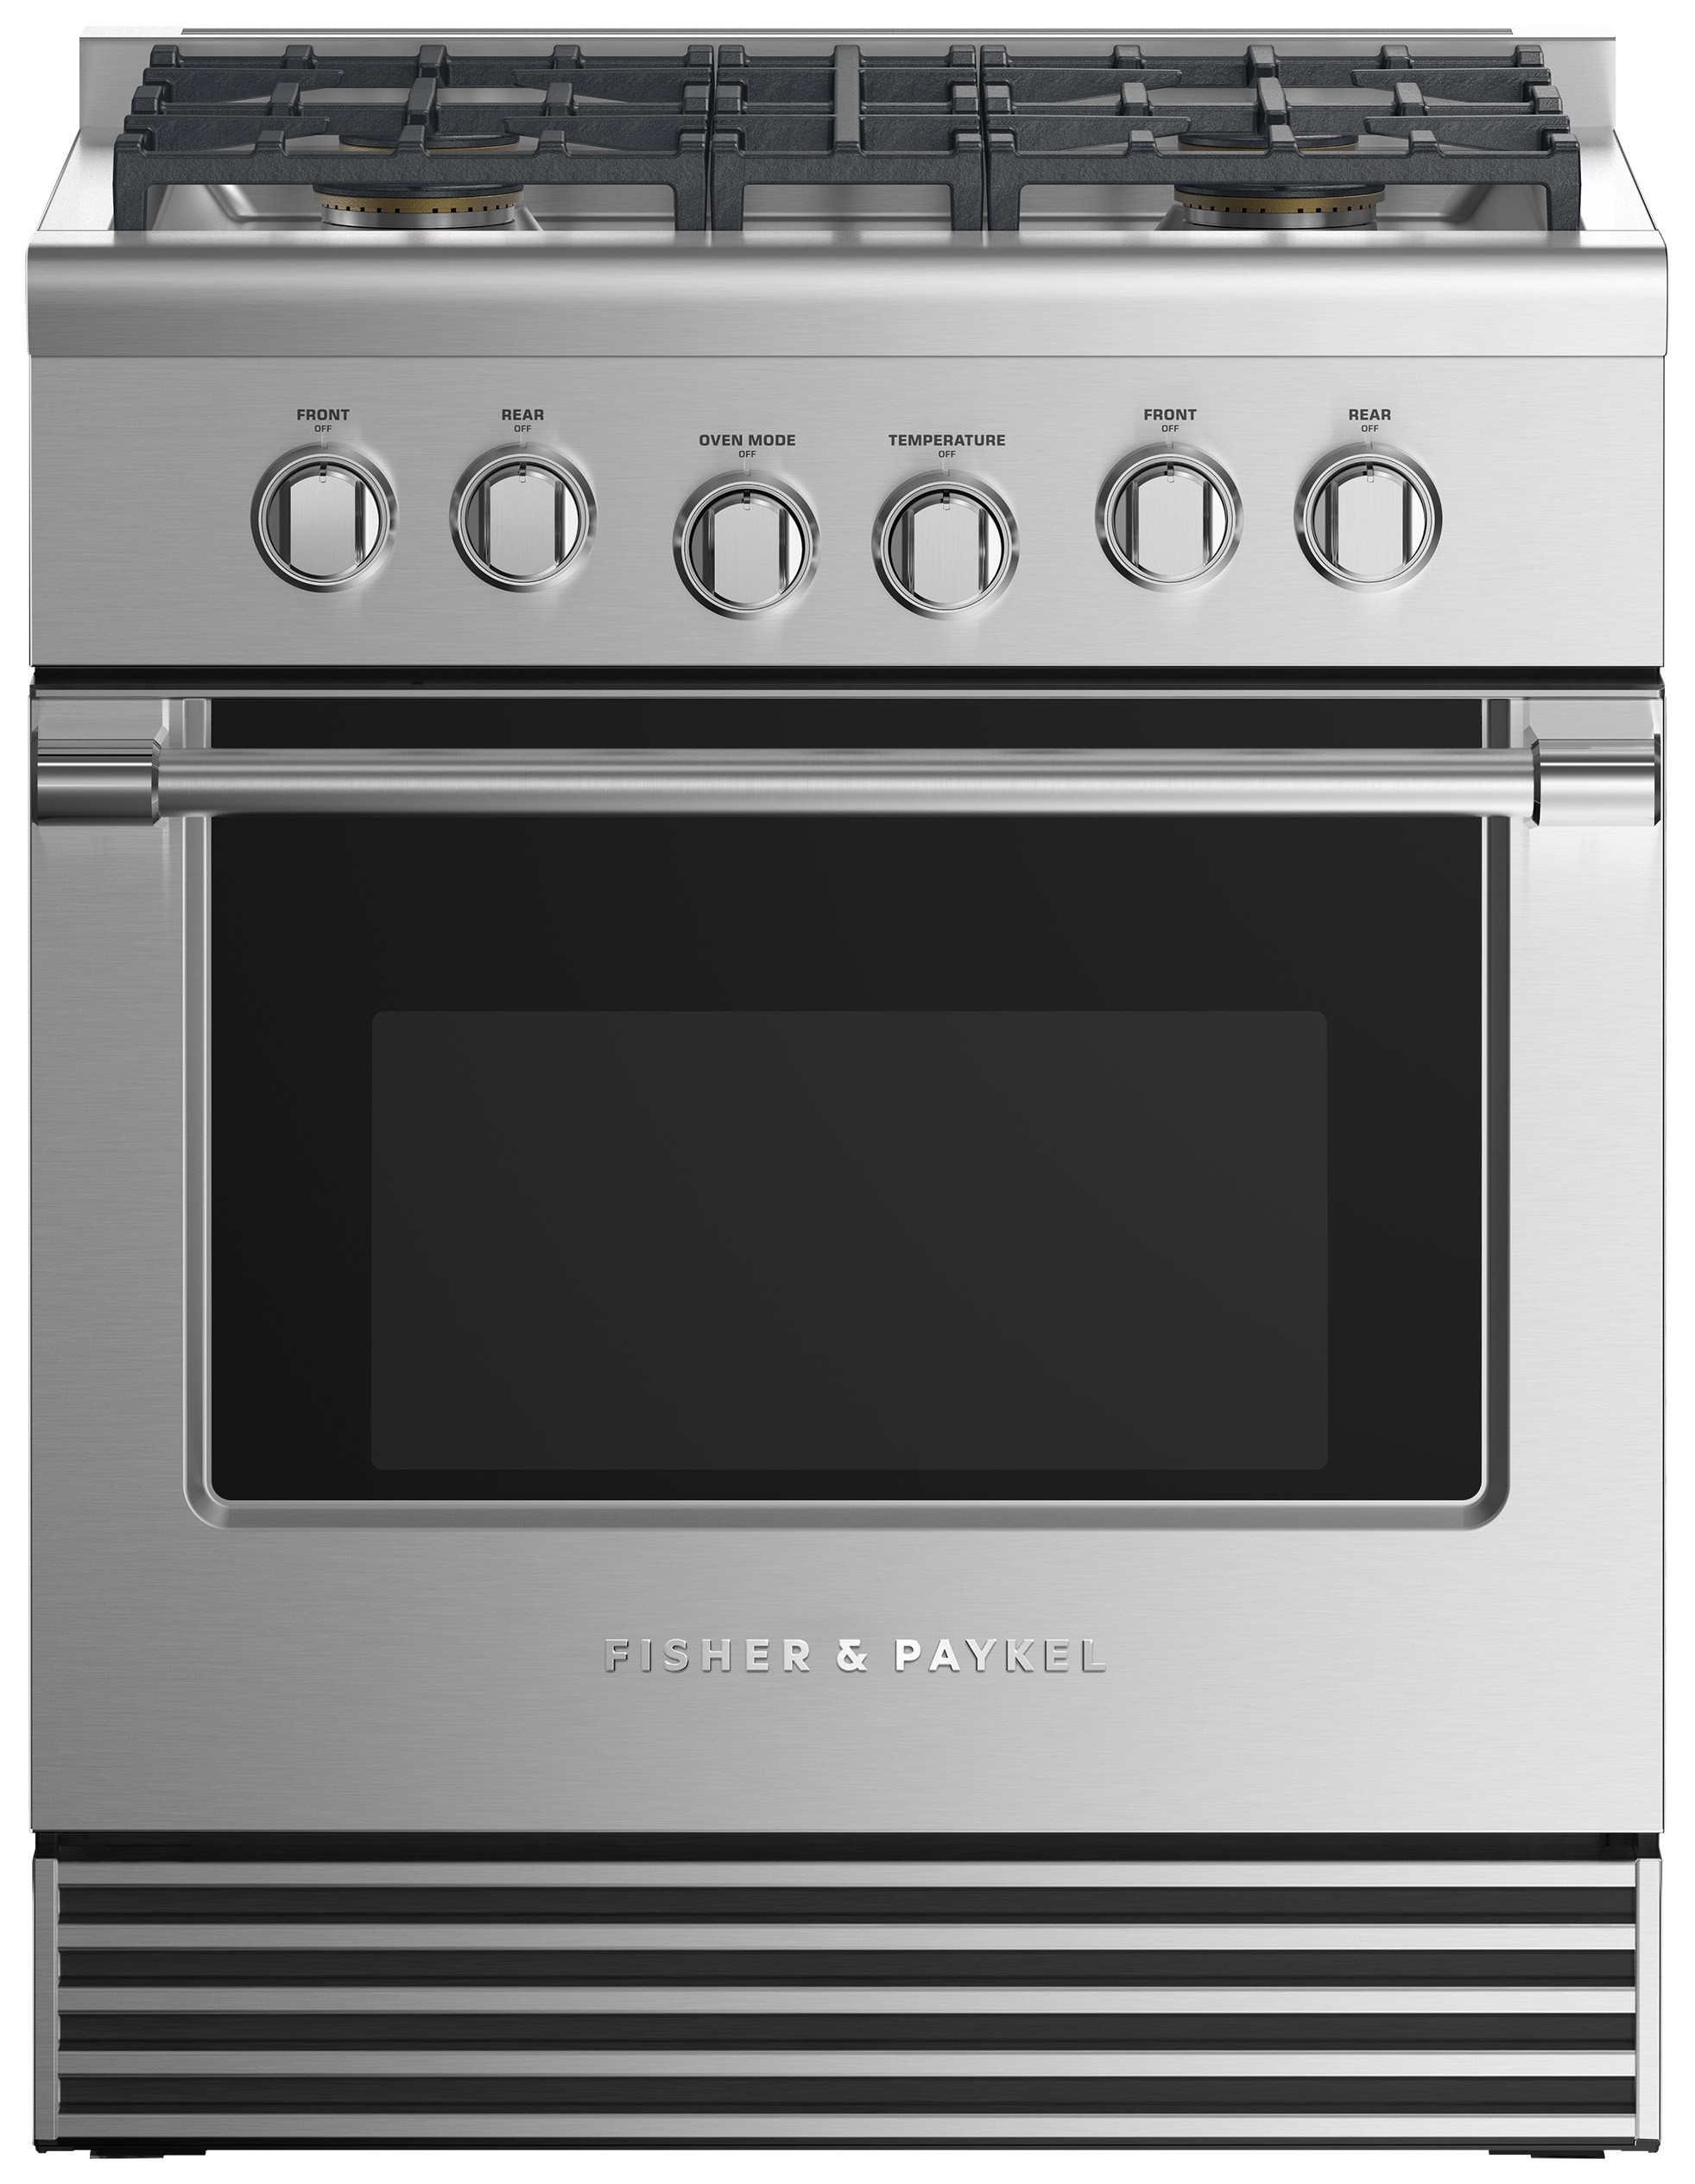 Surface de cuisson Fisher & Paykel